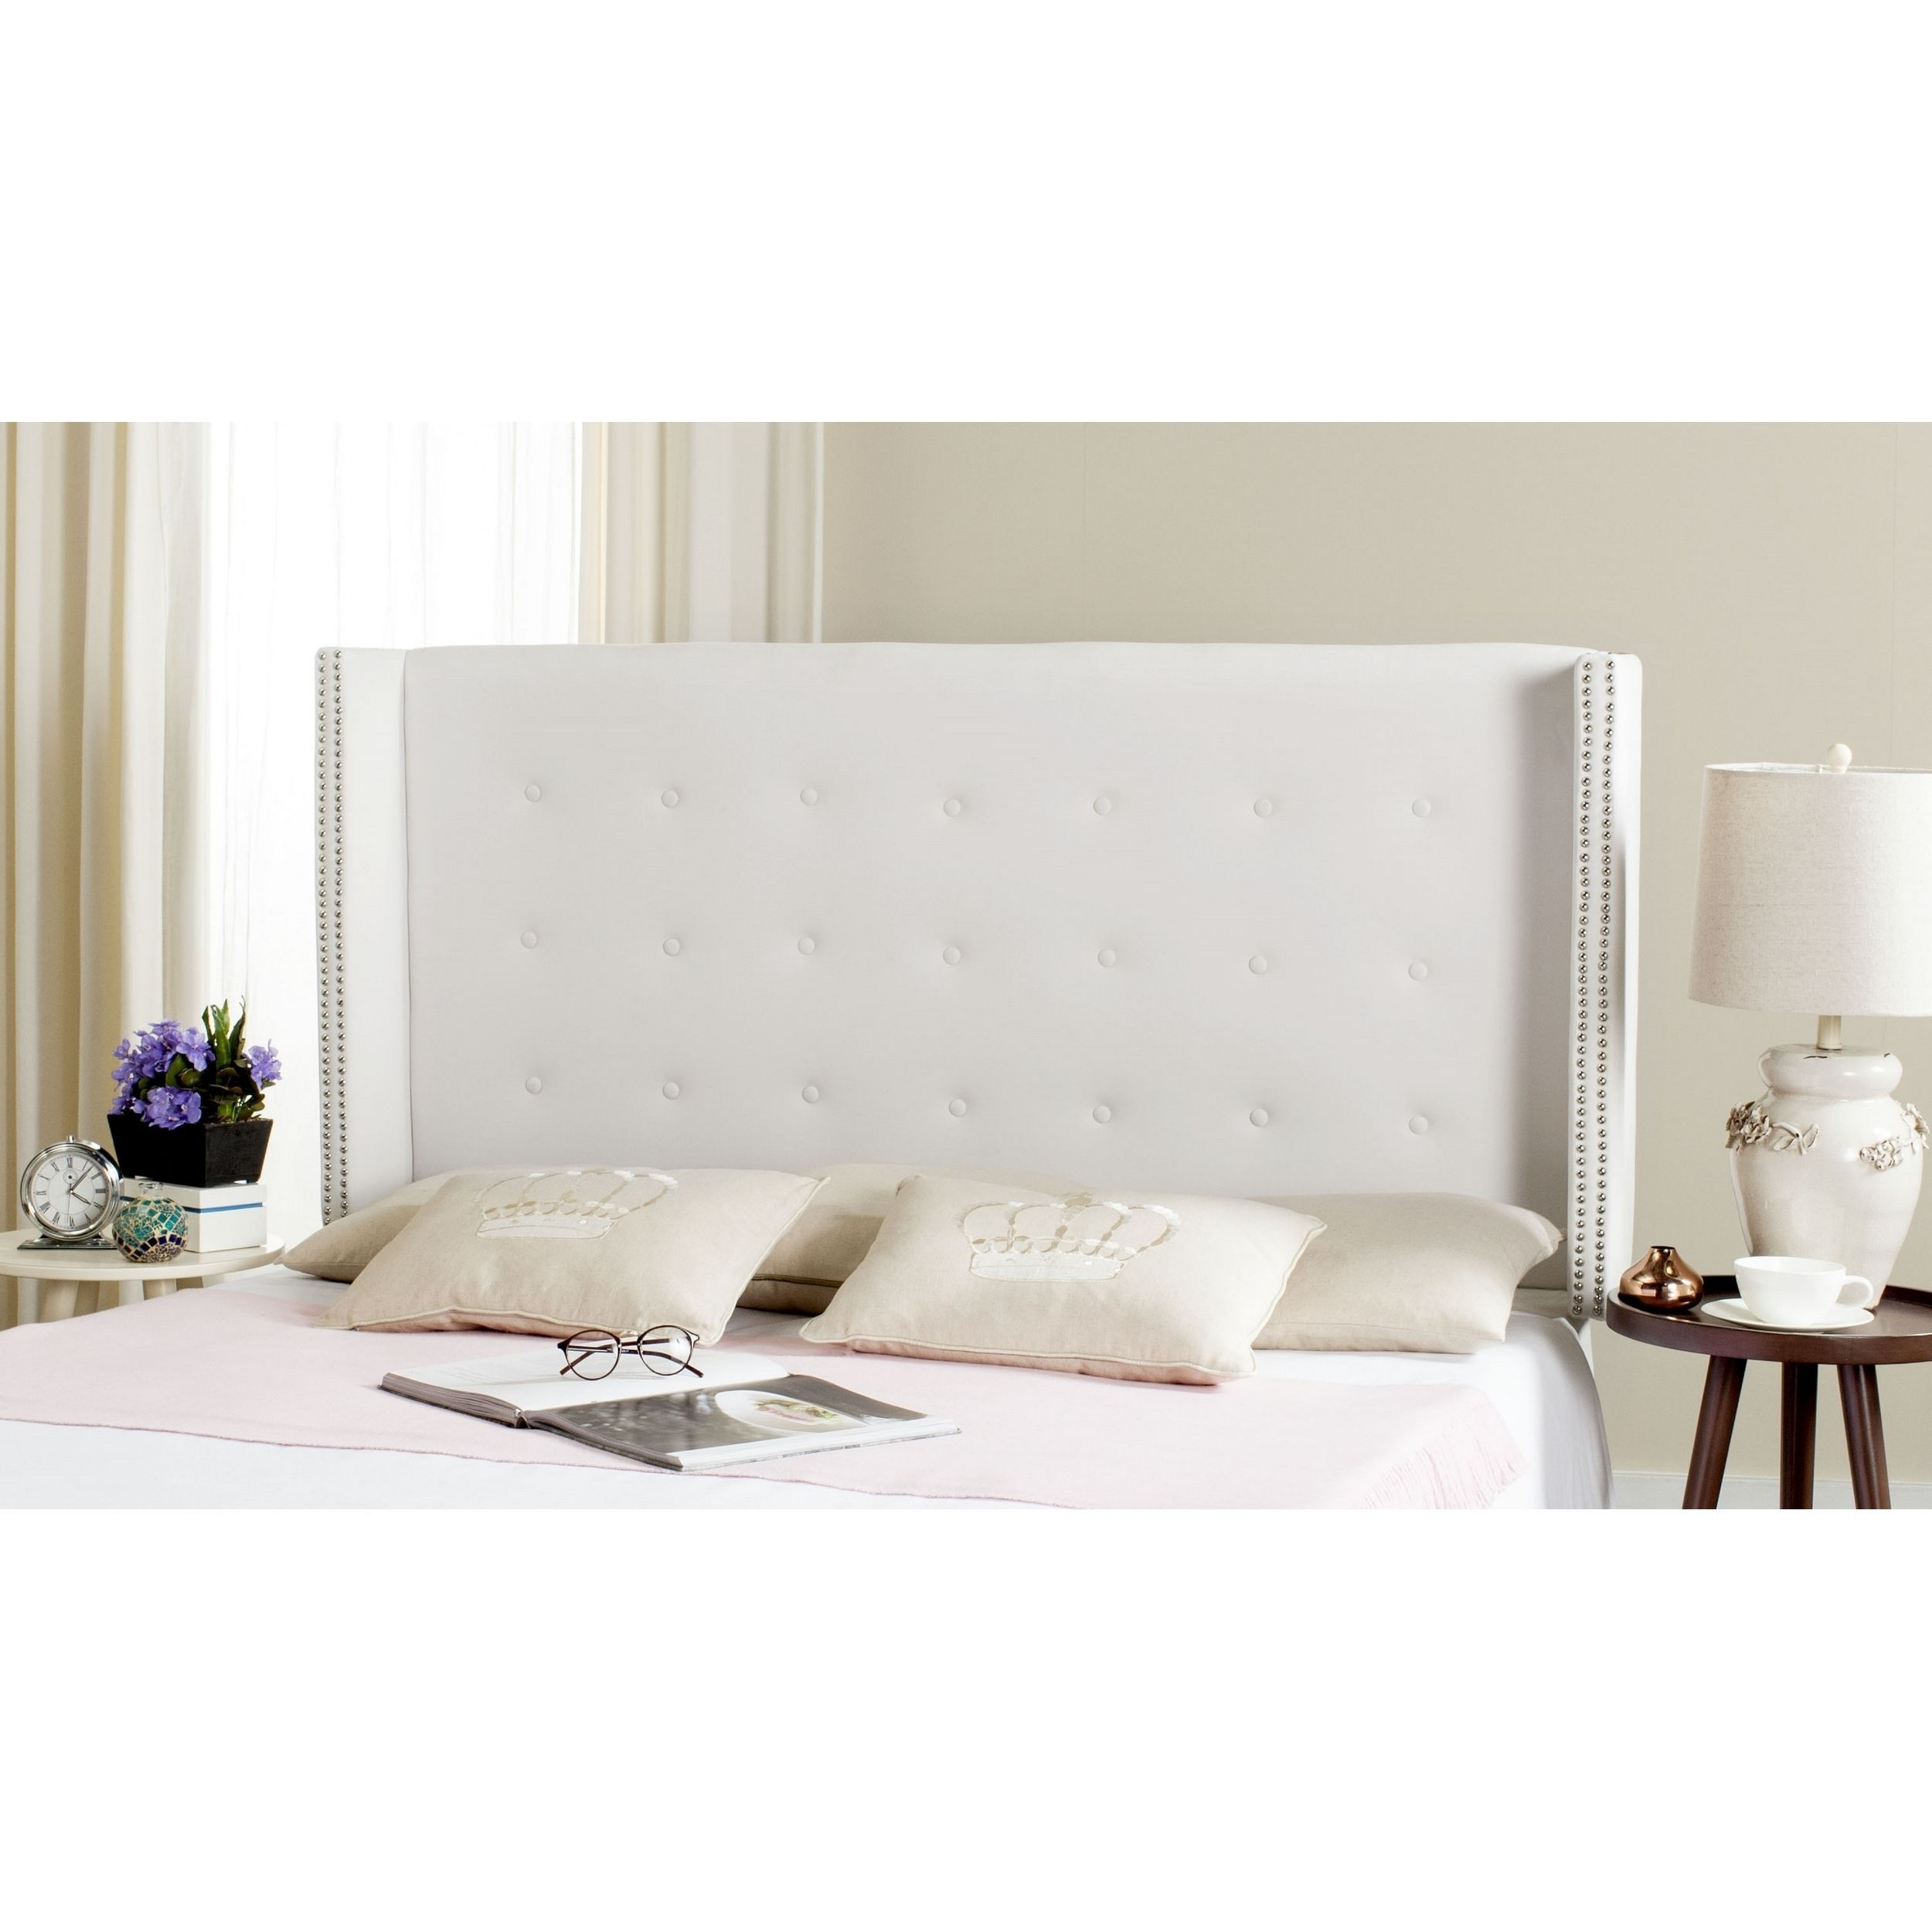 Posh and polished, this modern winged headboard brings glamour and intrigue  to the contemporary boudoir. Upholstered in a cool pewter hue, its tufting  and ...